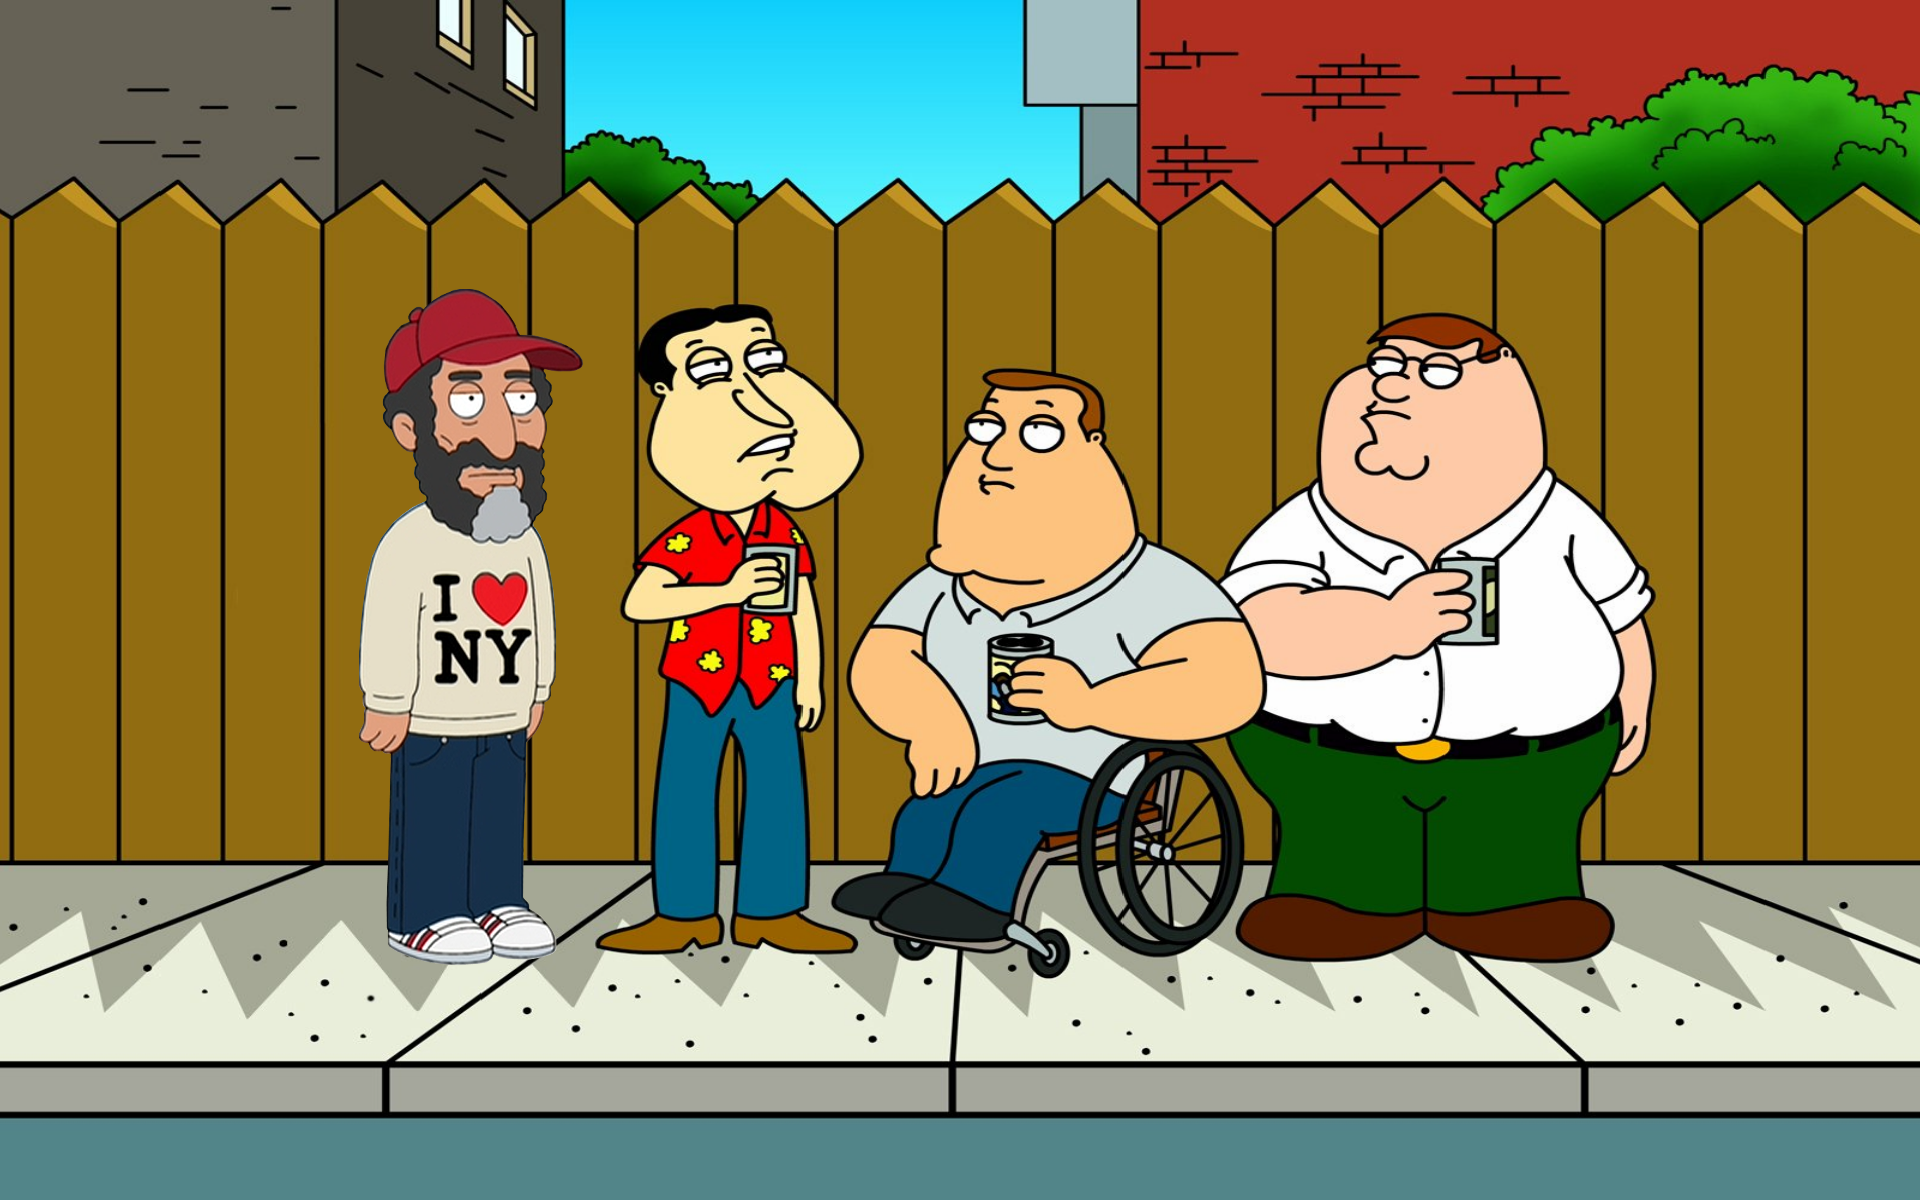 Desktop Images of Family Guy: 01/07/2014 by Kimber Janusz